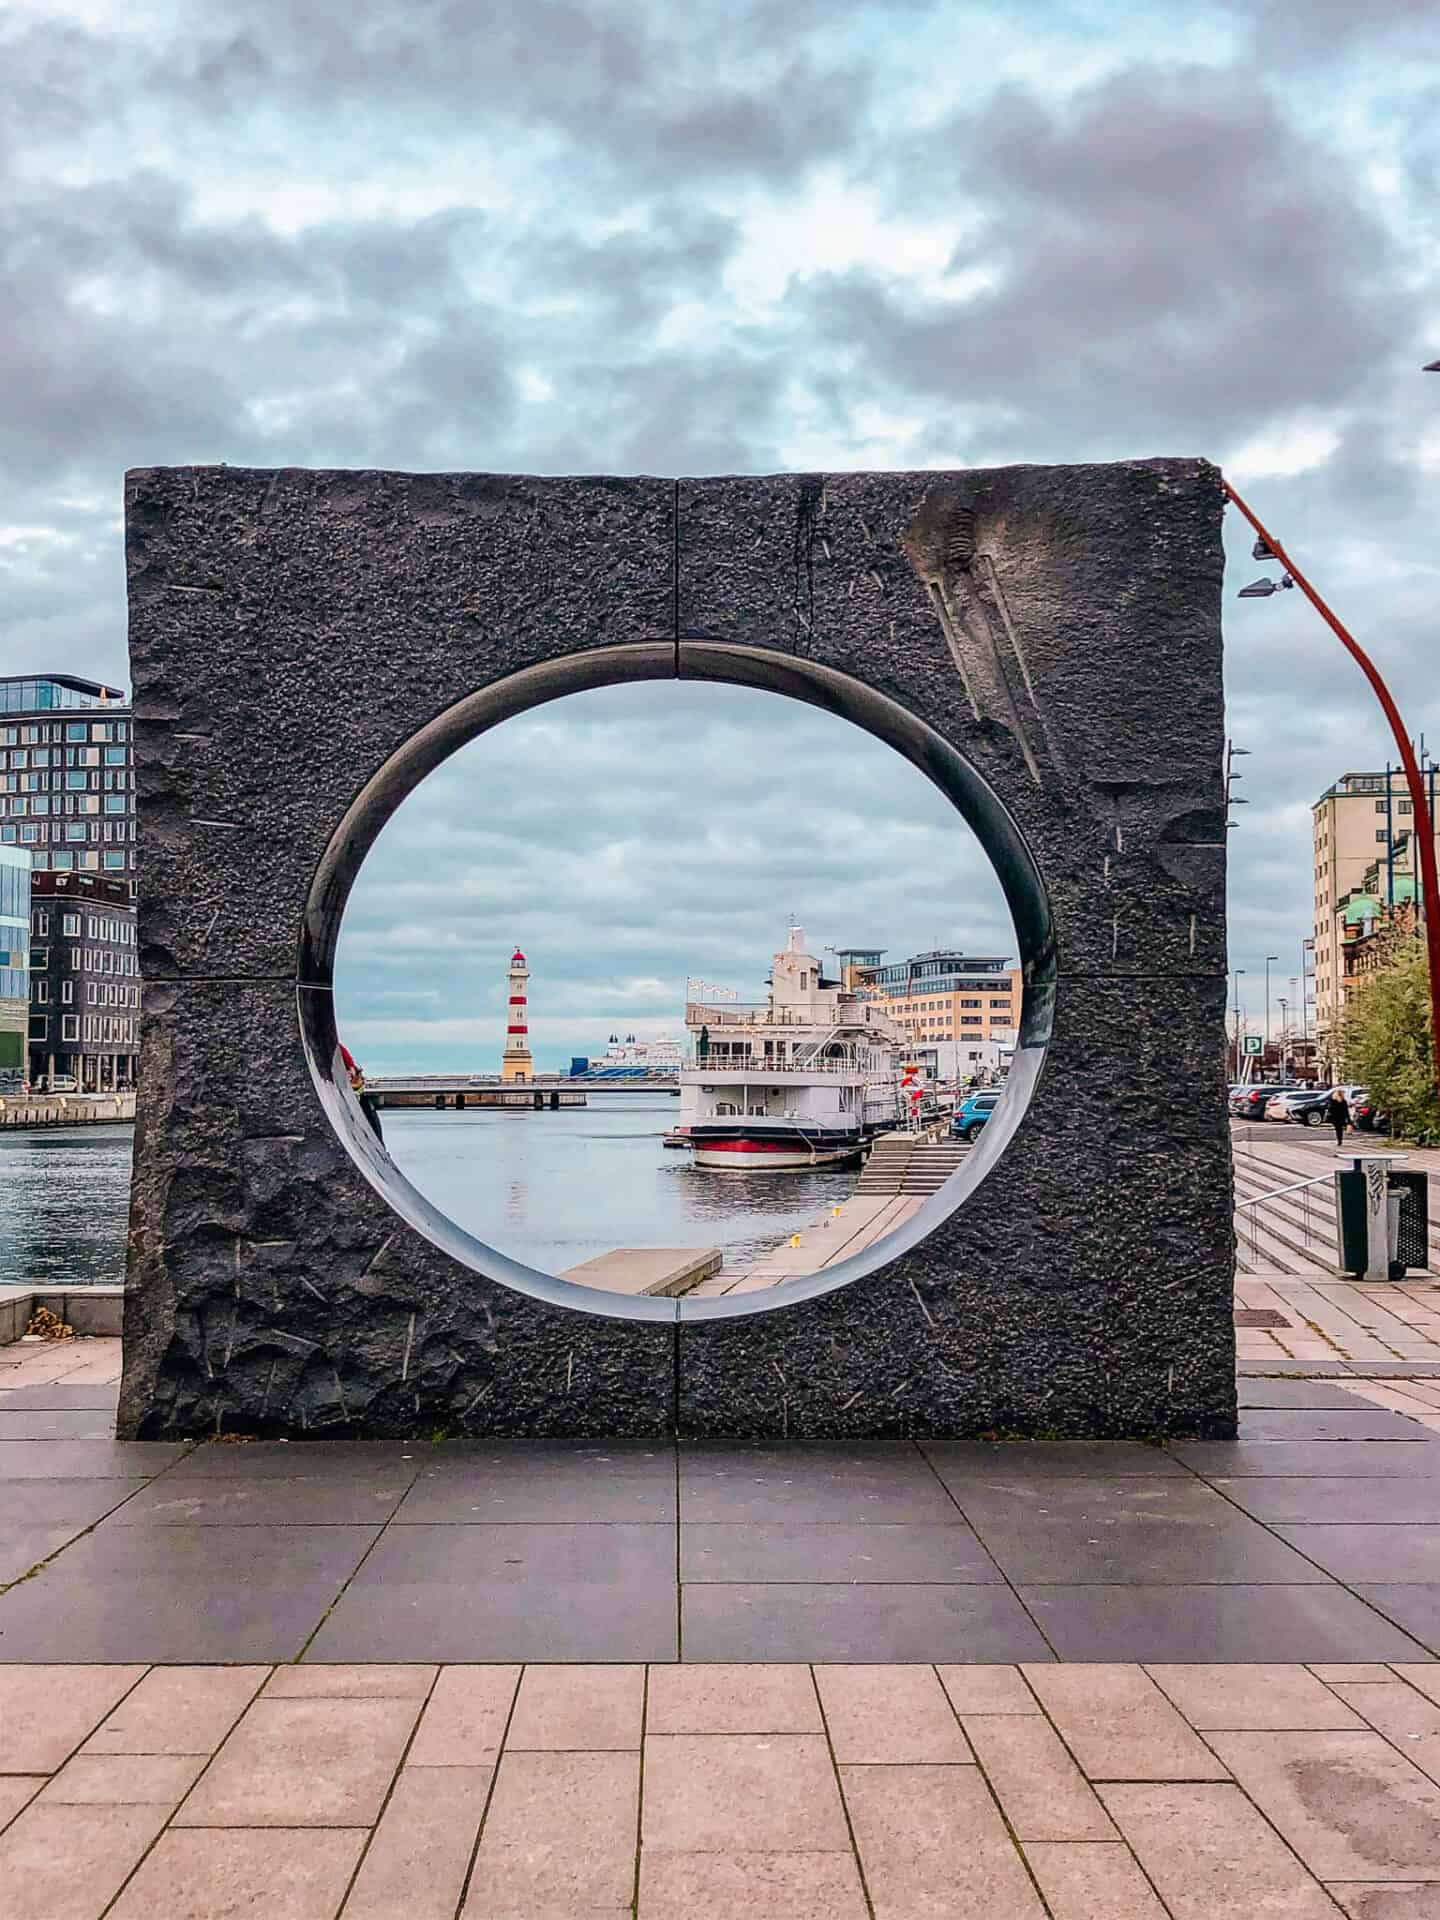 Stone square with a circle cut out and a harbour in the background